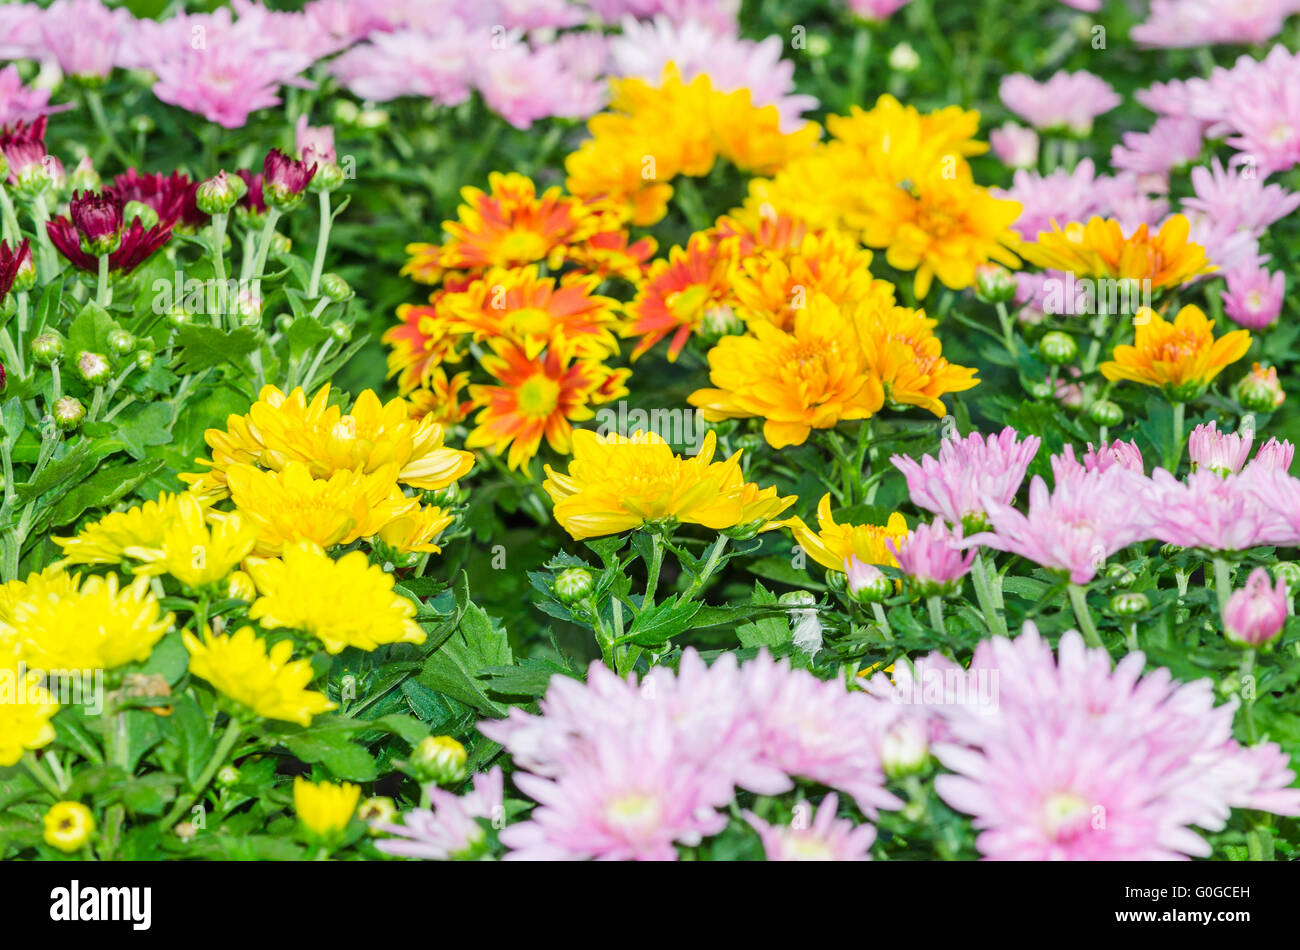 Various types of flowers stock photos various types of flowers various types of flowers stock image izmirmasajfo